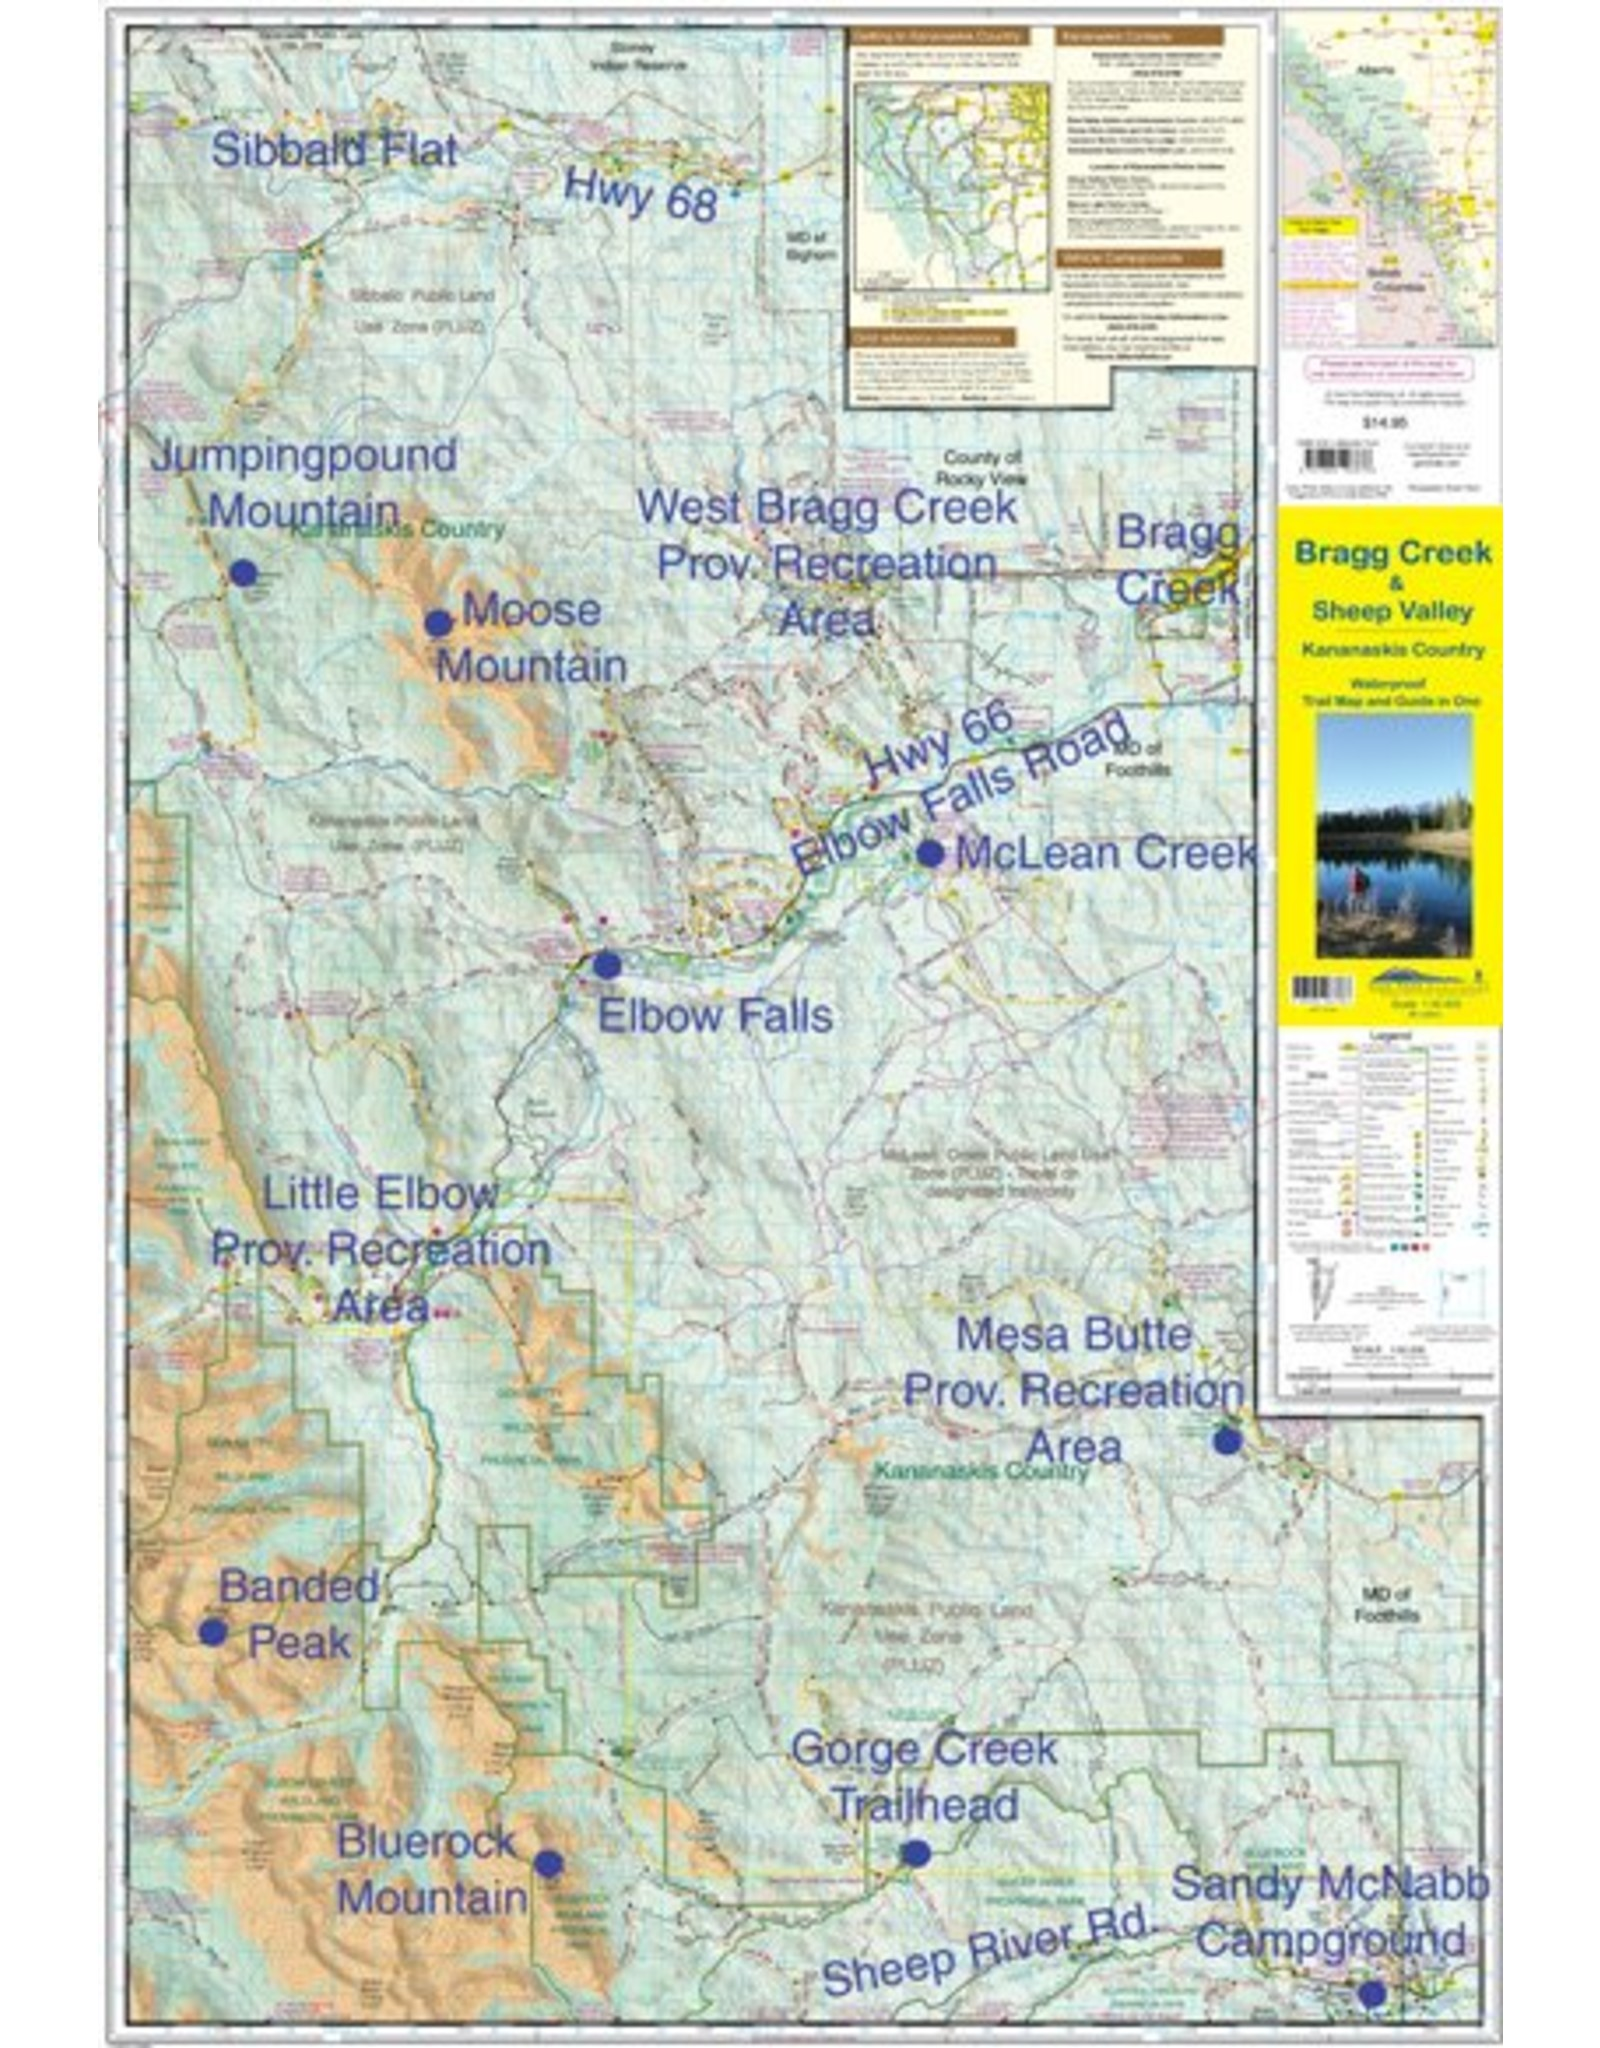 Gemtrek map Bragg Creek and Sheep Valley